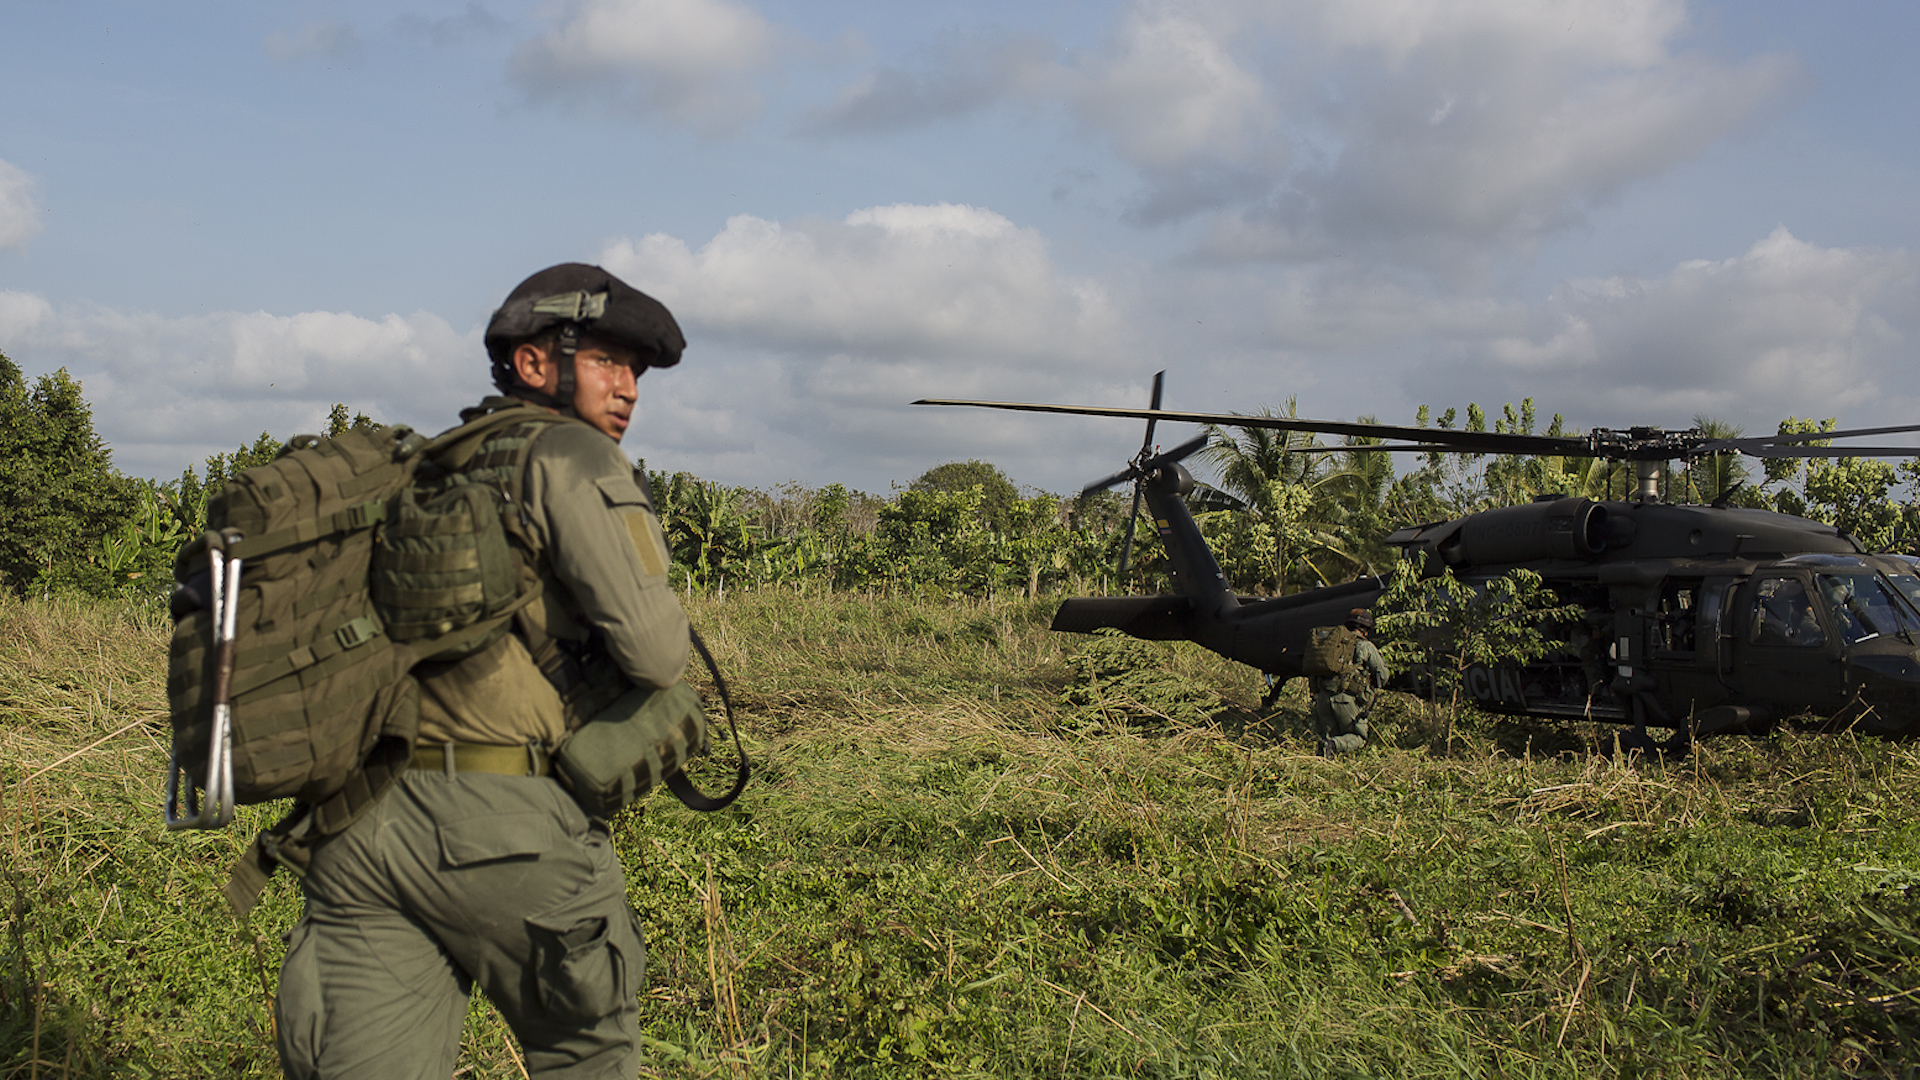 Colombia is preparing for peace. So are its drug traffickers.